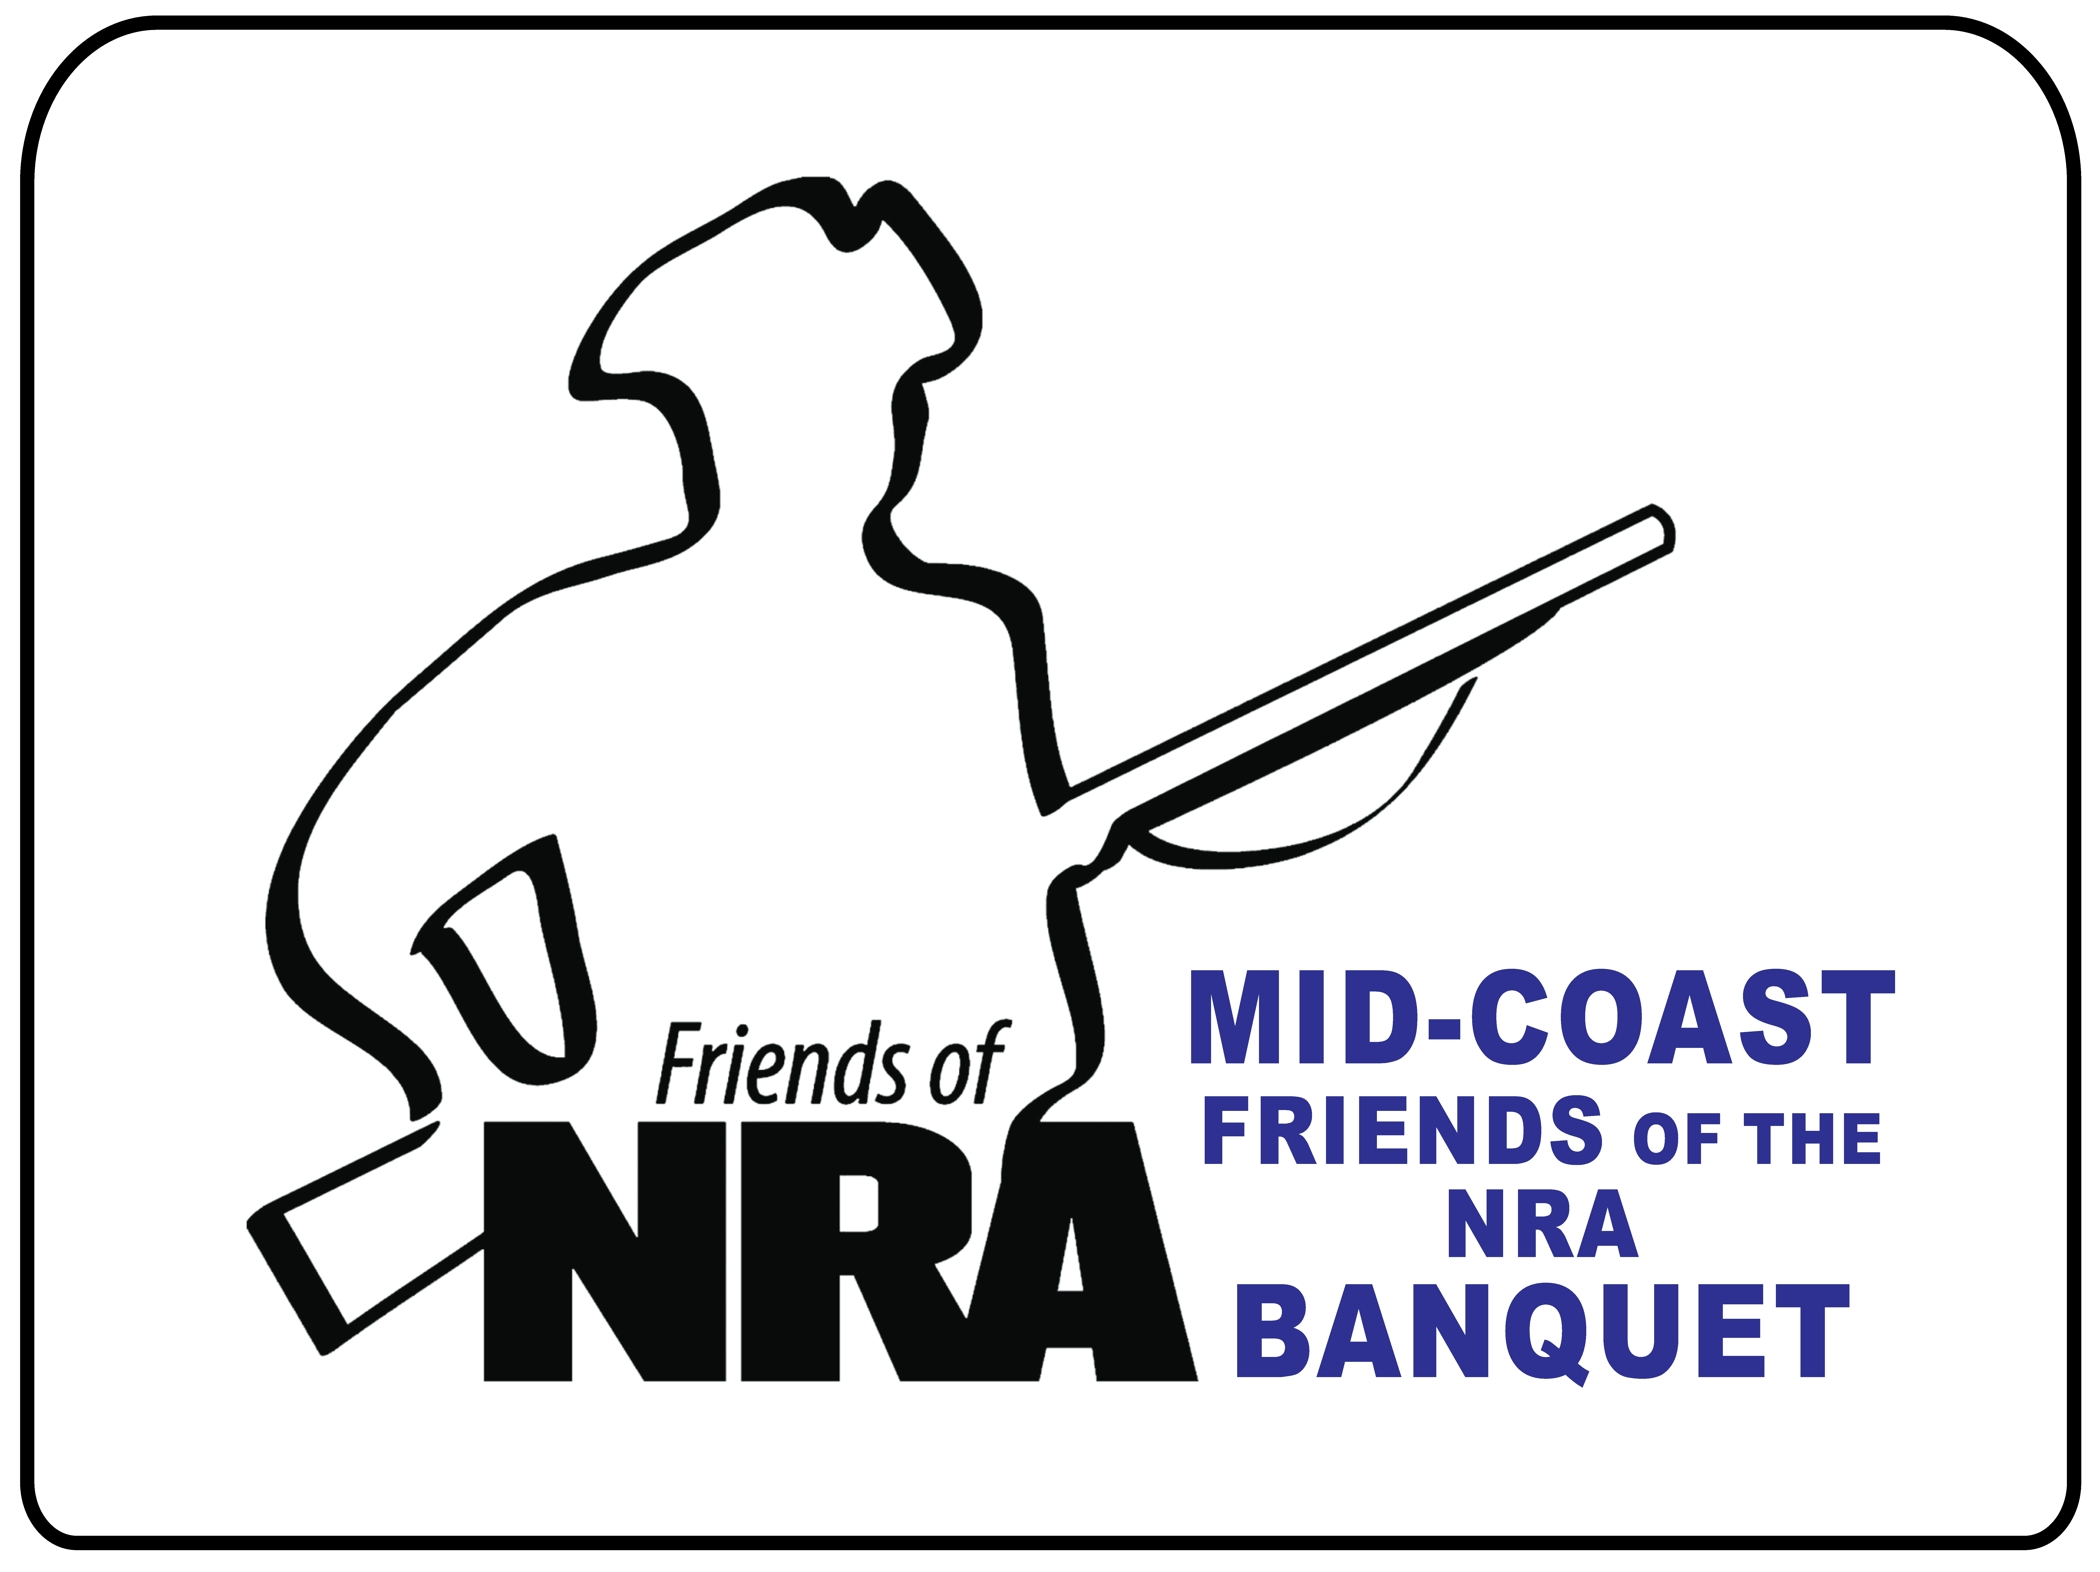 Mid coast 20friends 20of 20the 20nra 20banquet 202015